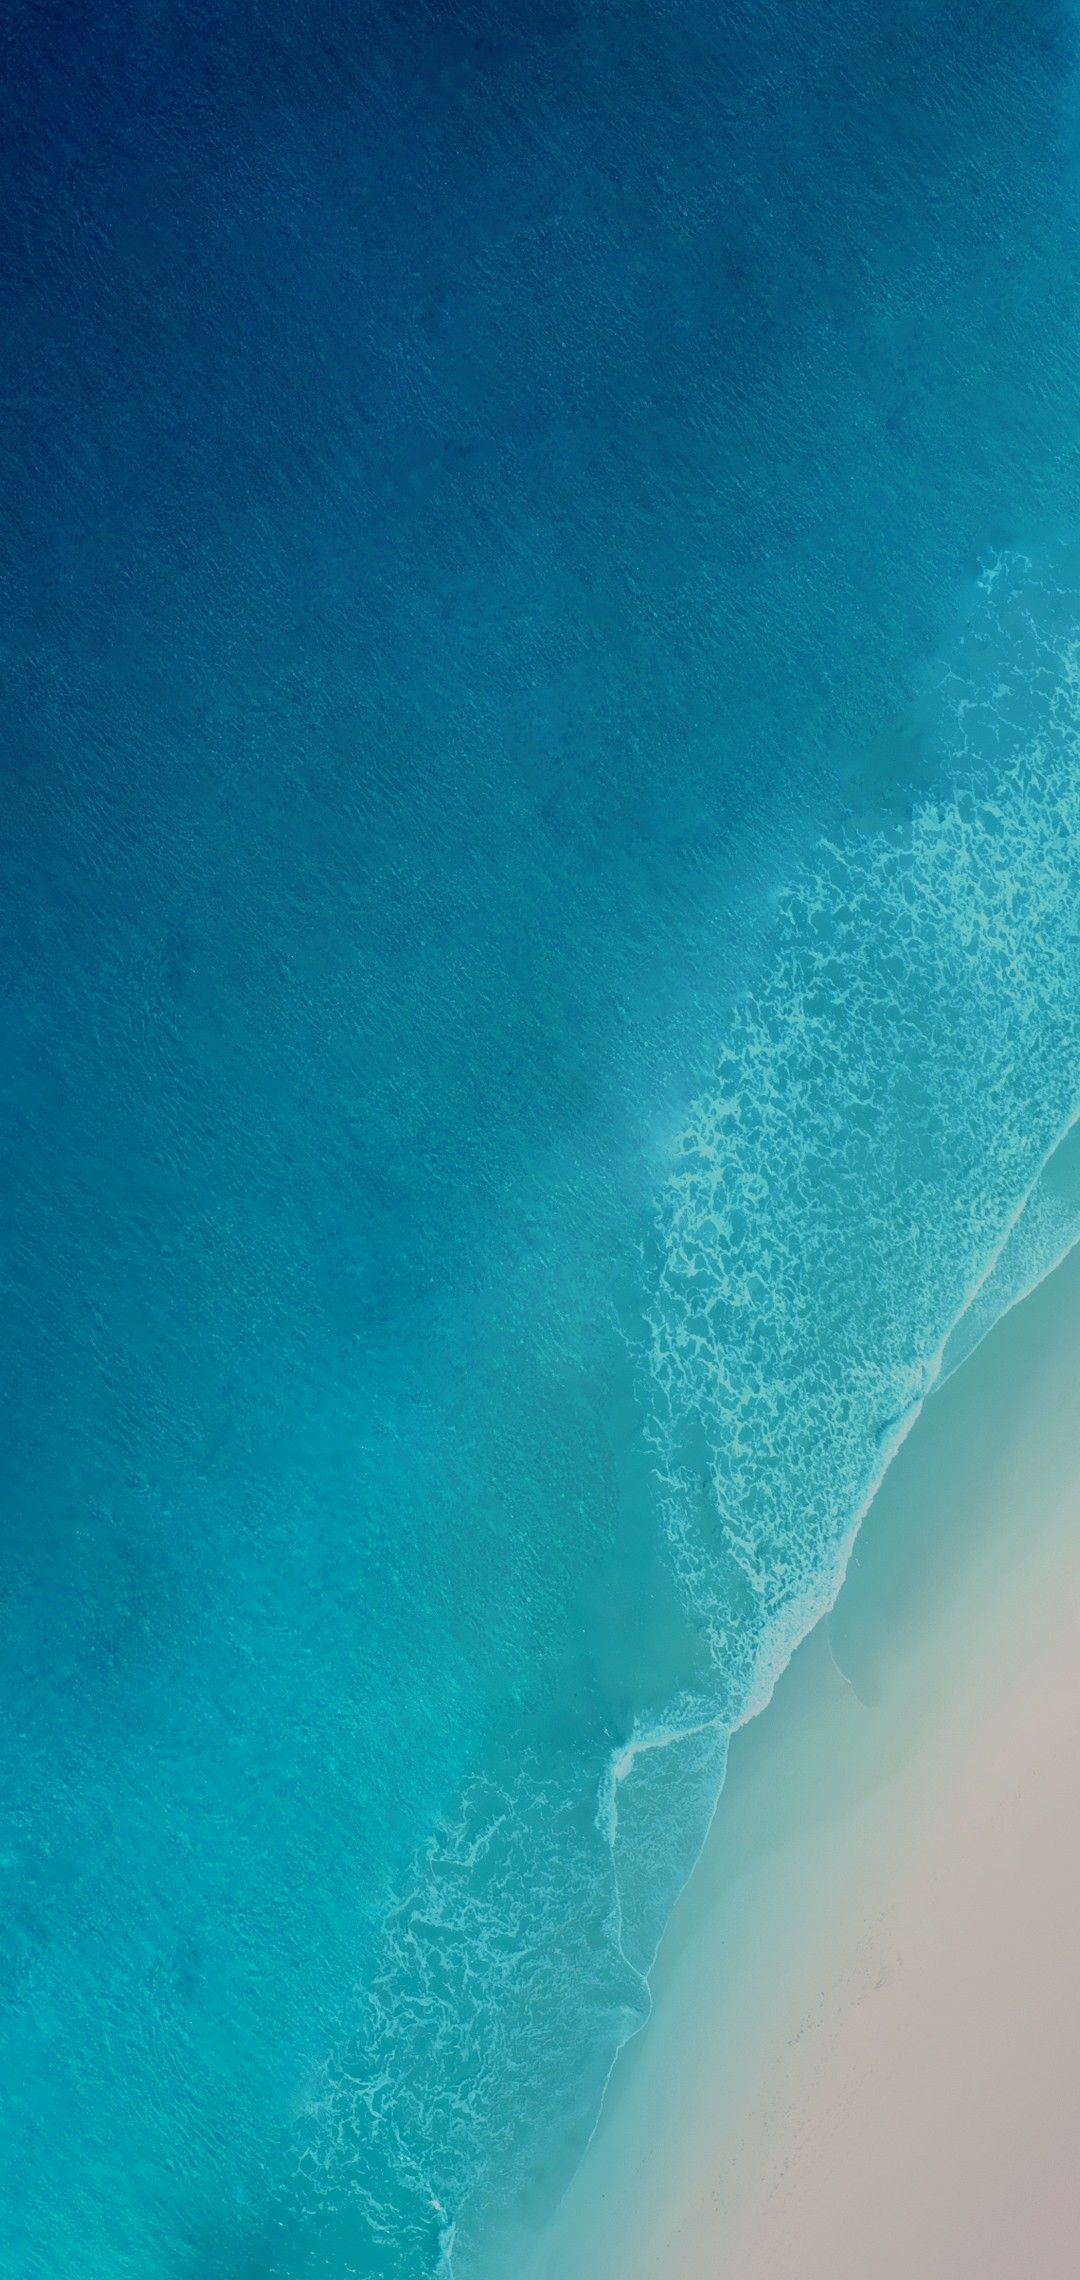 Ios 12 Iphone X Aqua Blue Water Ocean Apple Wallpaper Iphone 8 Clean Beauty Colour Io Iphone Wallpaper Water Blue Wallpaper Iphone Iphone Wallpaper